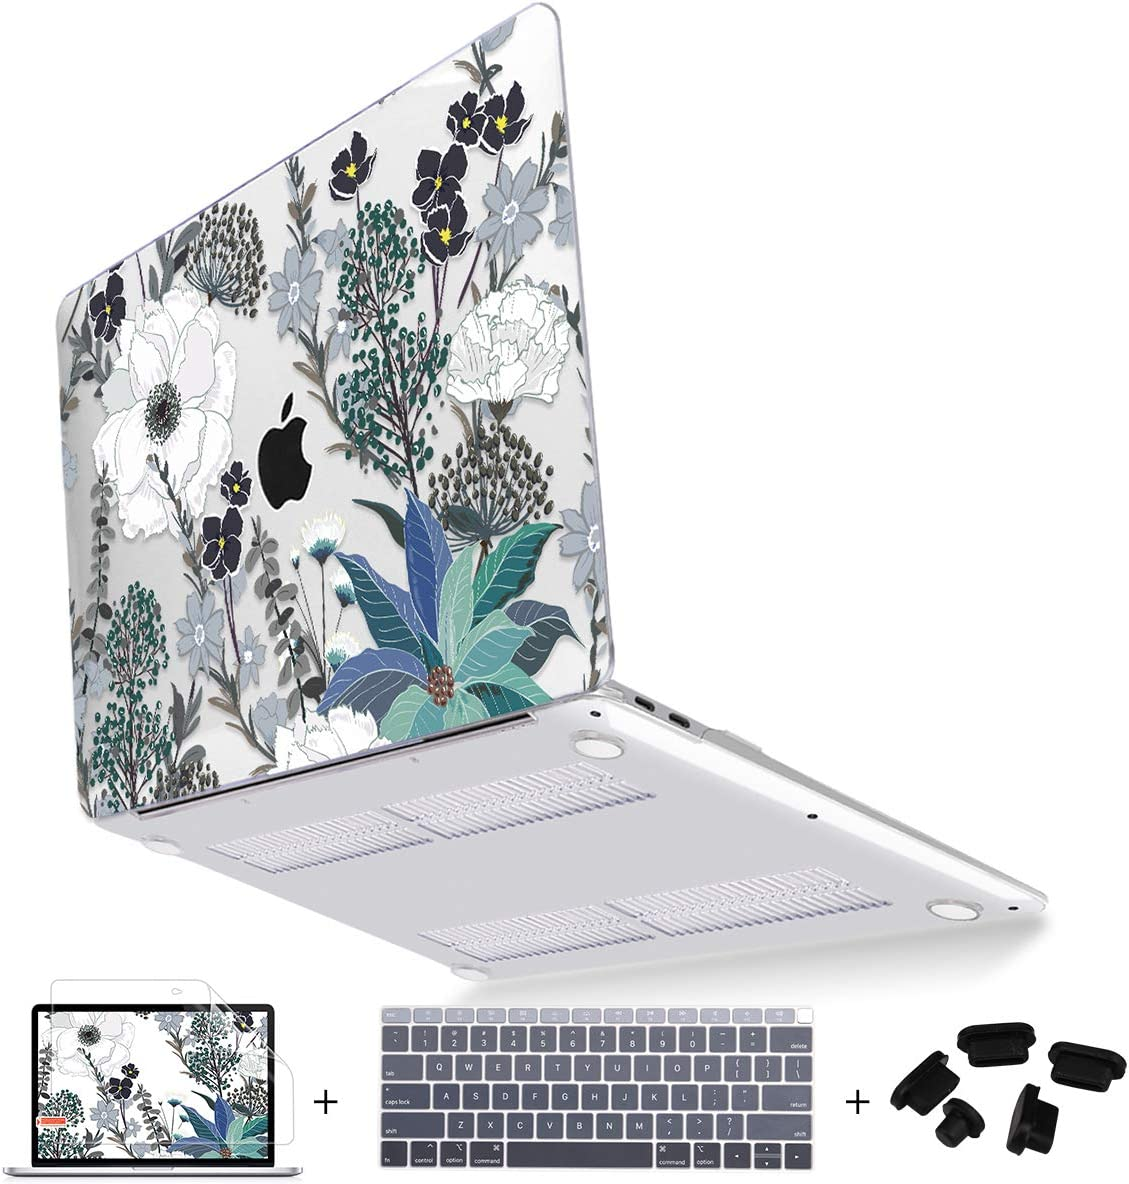 Mektron for Newest MacBook Air 13 Inch Case 2020 2019 2018 A1932 A2179 with Retina Display fits Touch ID 4 in 1 Bundle,Plastic Hard Shell,Keyboard Cover,Screen Protector & Dust Plug Set, Retro Florals